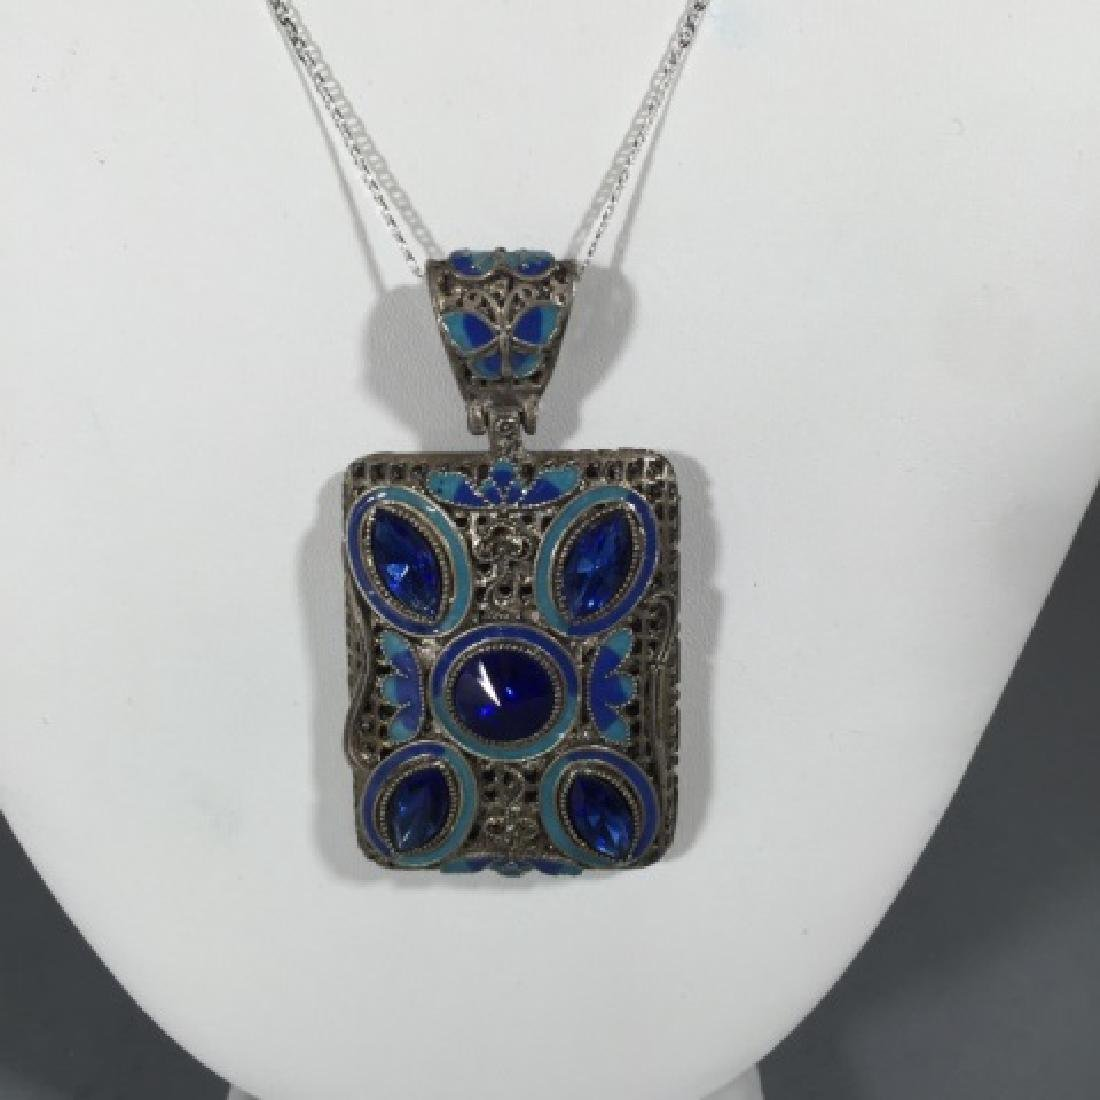 Sterling Necklace w Large Filigree Enamel Pendant